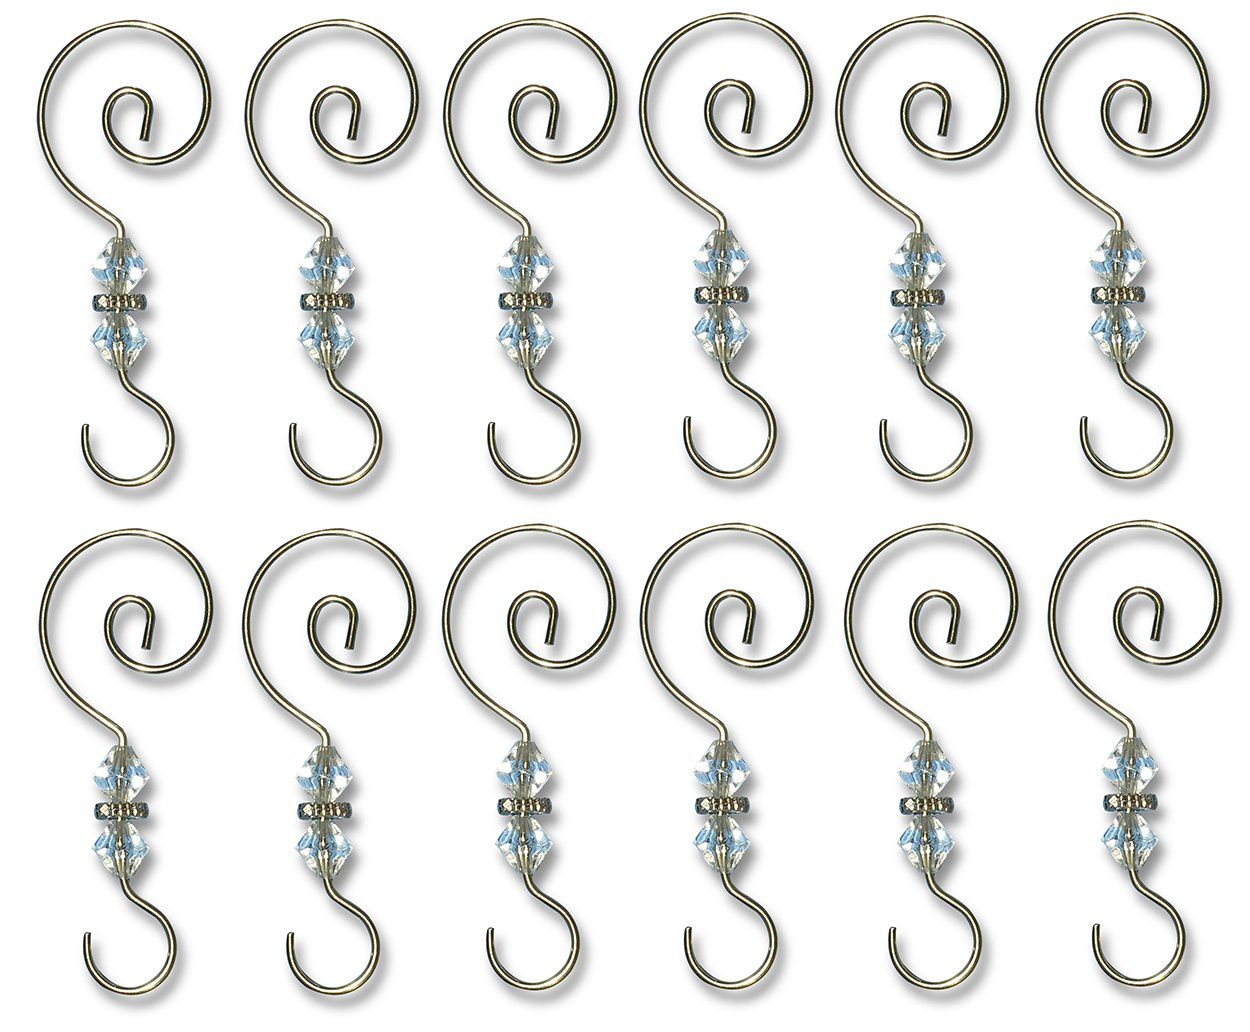 Cheap Decorative Ornament Hooks Find Decorative Ornament Hooks